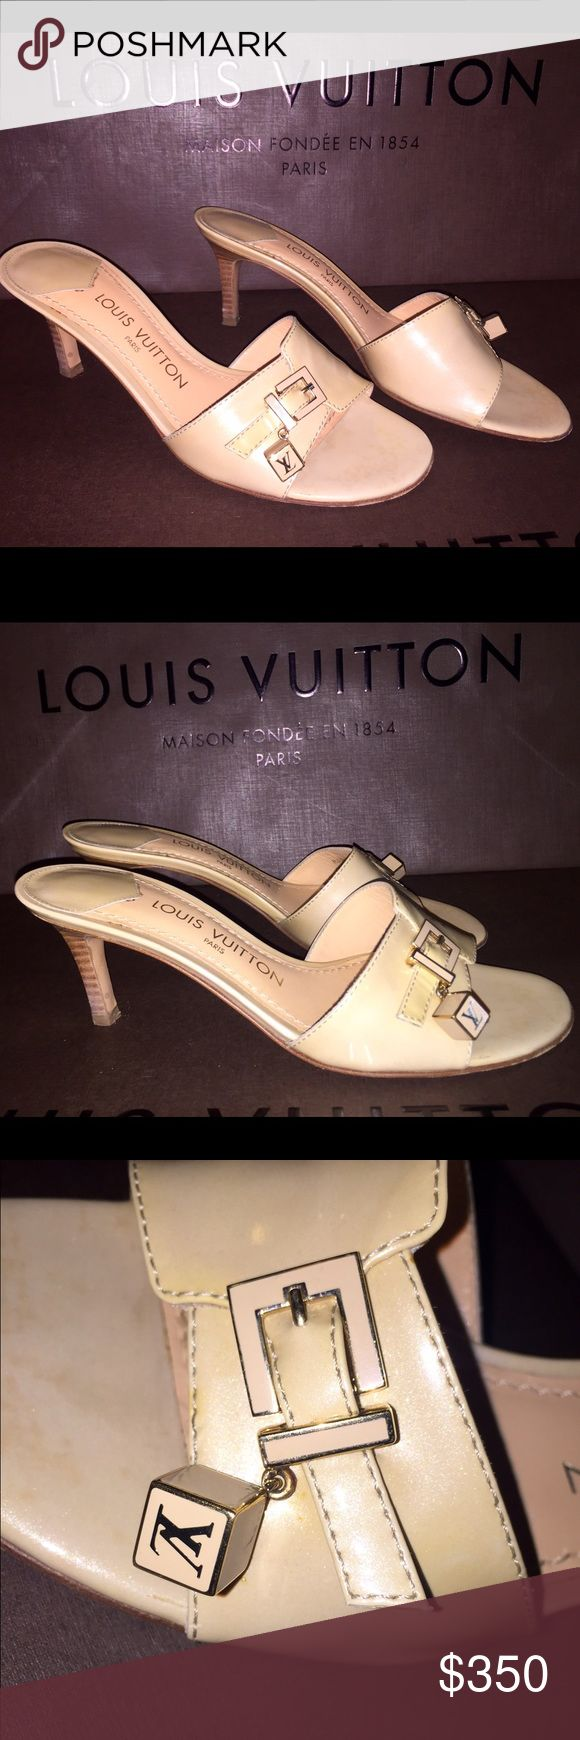 Louis Vuitton Dice mule Heels Authentic Louis Vuitton dice mule. In size 37.5. In beige vernis patent leather. Comes with LV  box, extra heel tips, Worn 2 times Louis Vuitton Shoes Heels